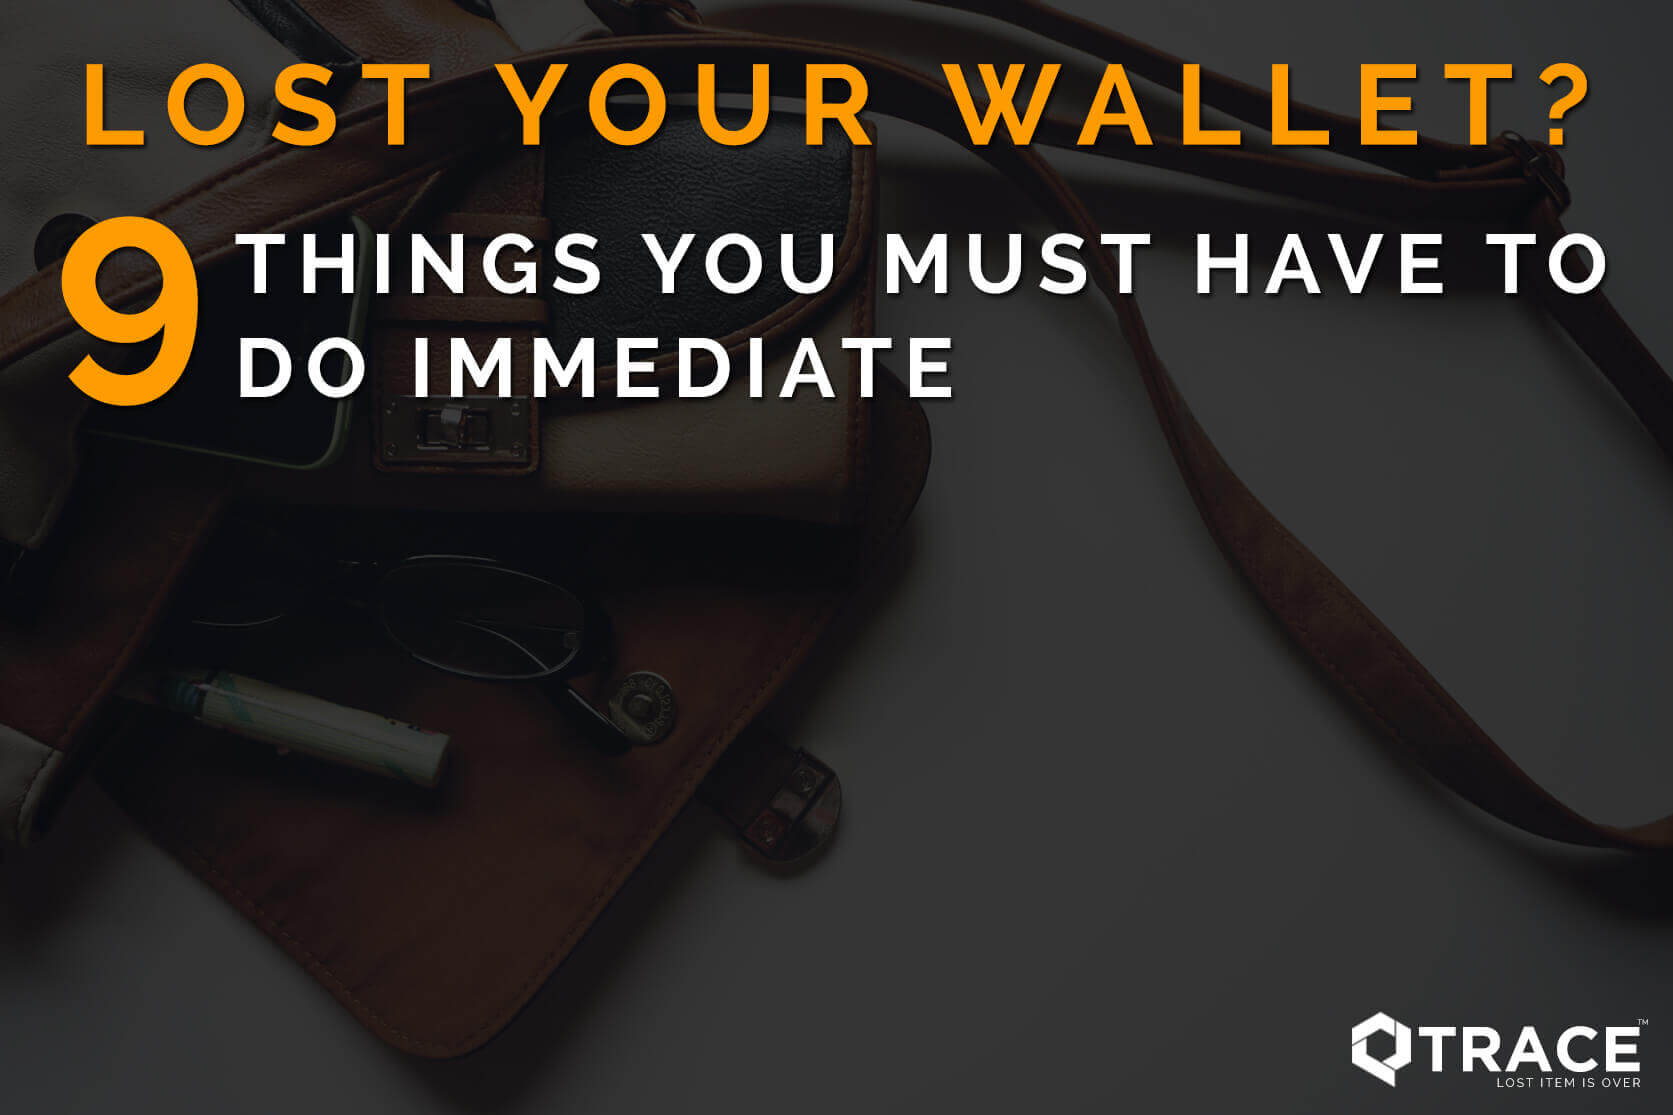 What Should I Do If My Wallet Is Stolen or Lost